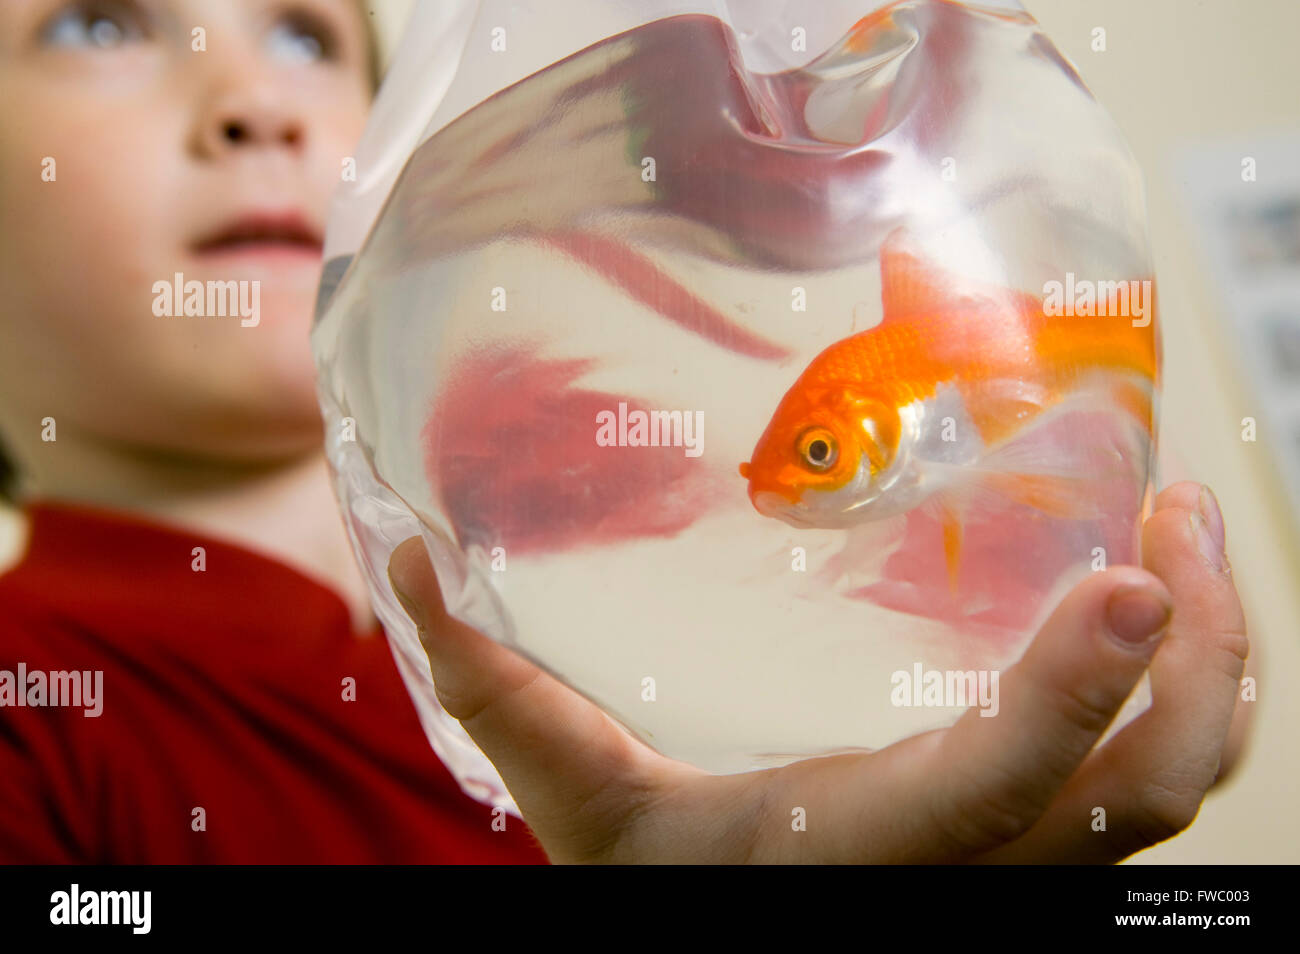 A goldfish in a plastic bag being held by a young boy after being bought from a pet shop and transported home. - Stock Image